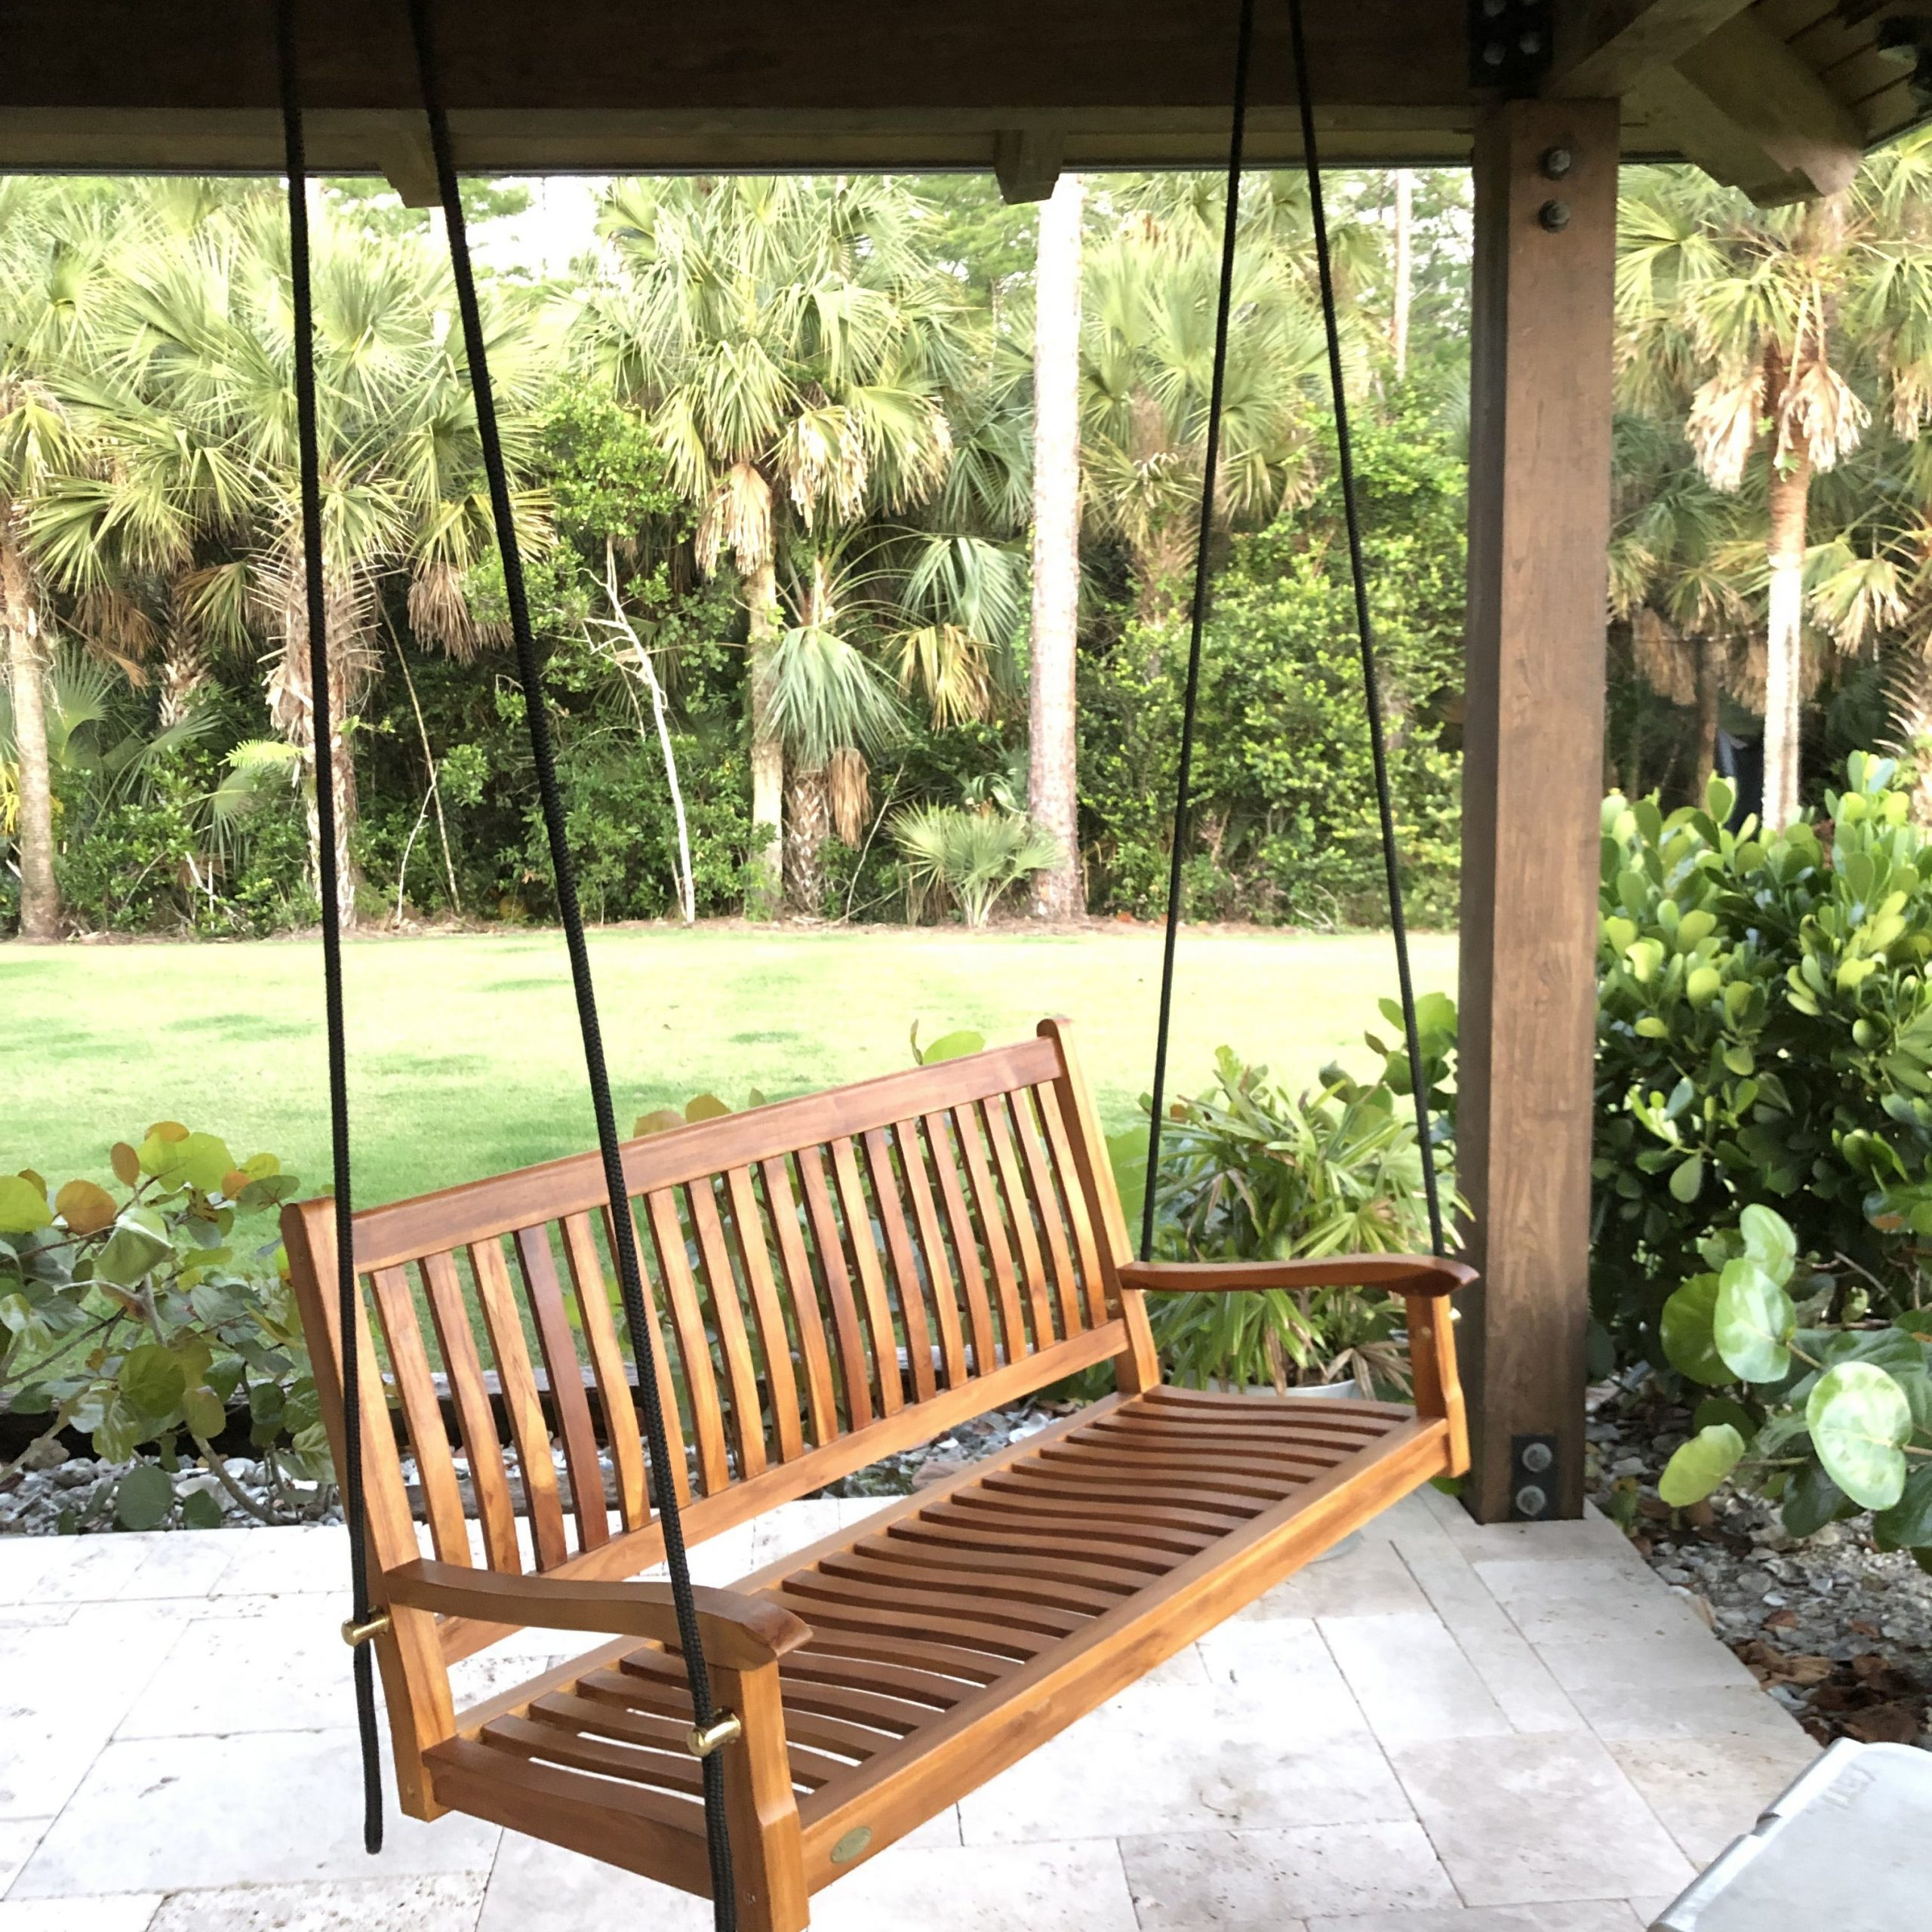 Teak Porch Swing With Boat Rope | Cypress Tide | Porch Swing In Teak Porch Swings (View 7 of 25)